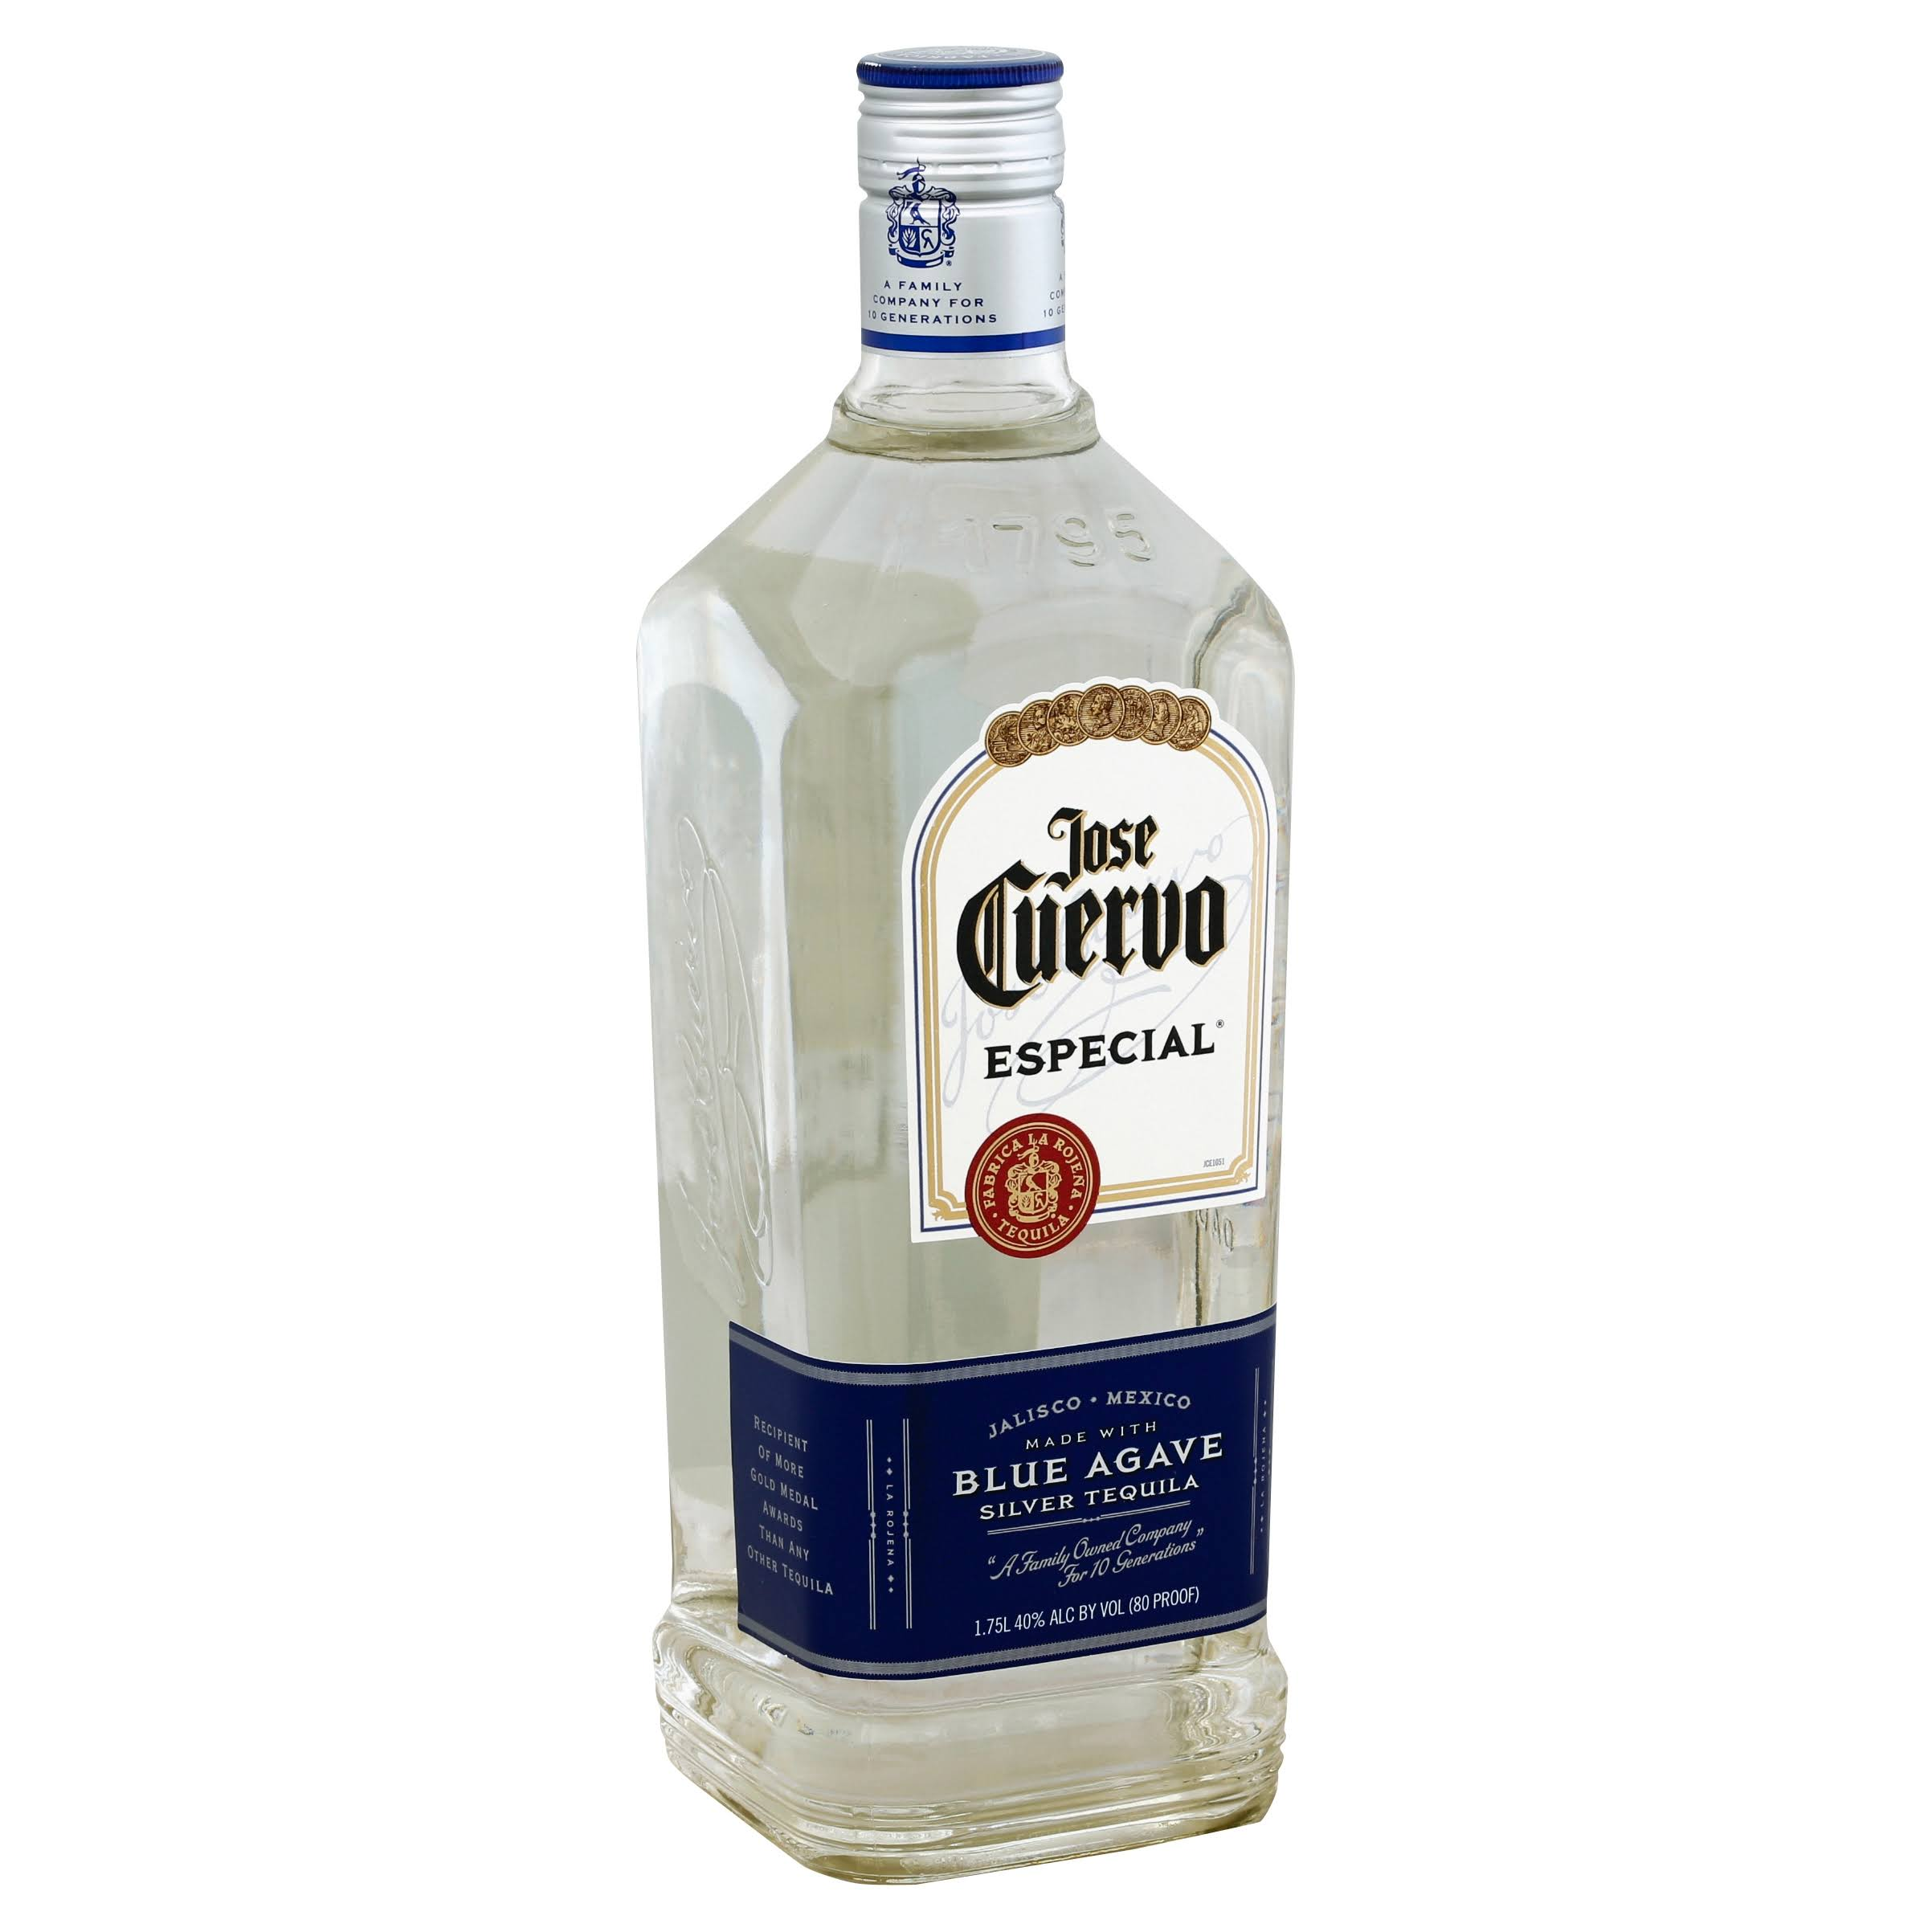 Jose Cuervo Especial Tequila, Silver, Blue Agave - 1.75 l